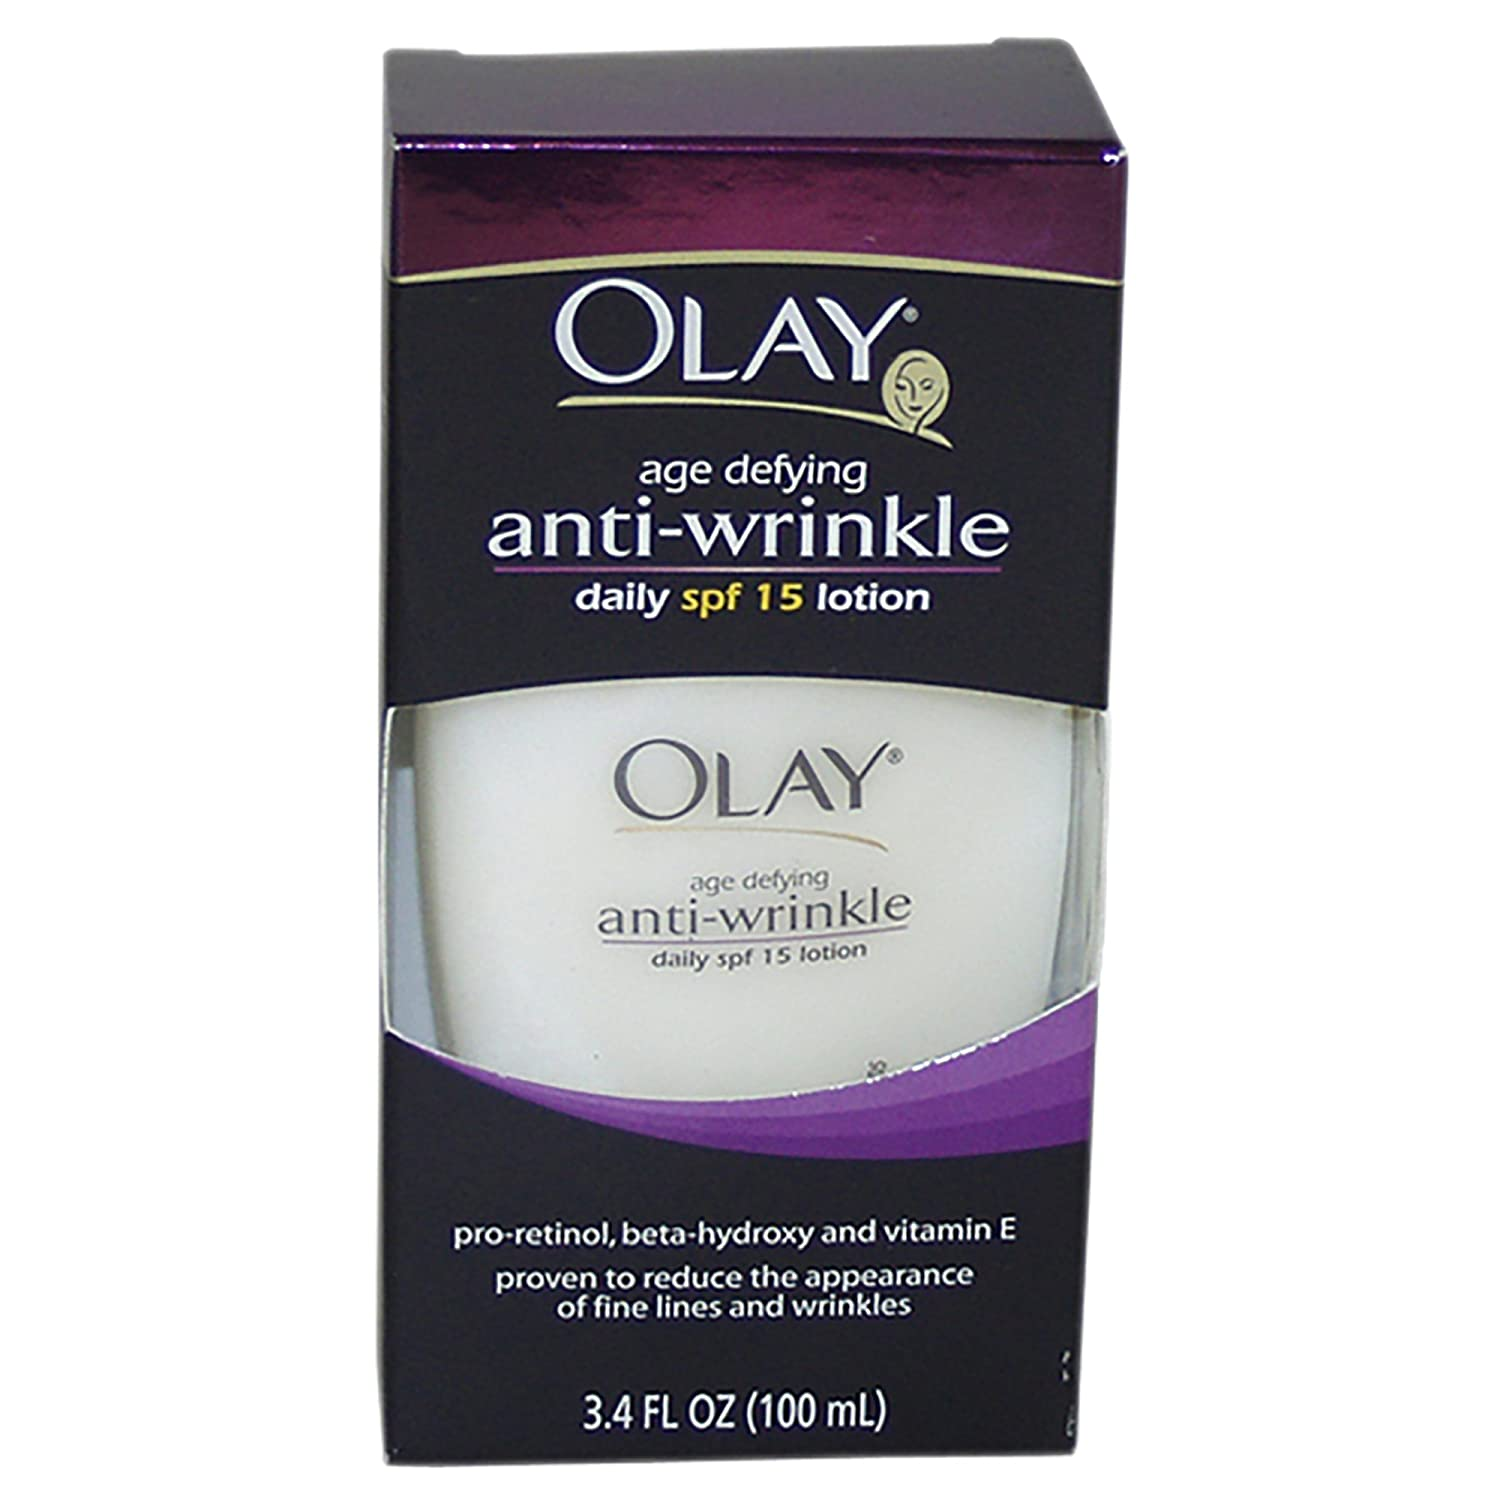 Olay Age Defying ADVANCED Gel Moisturizer with Hyaluronic Acid, 50 mL Procter and Gamble